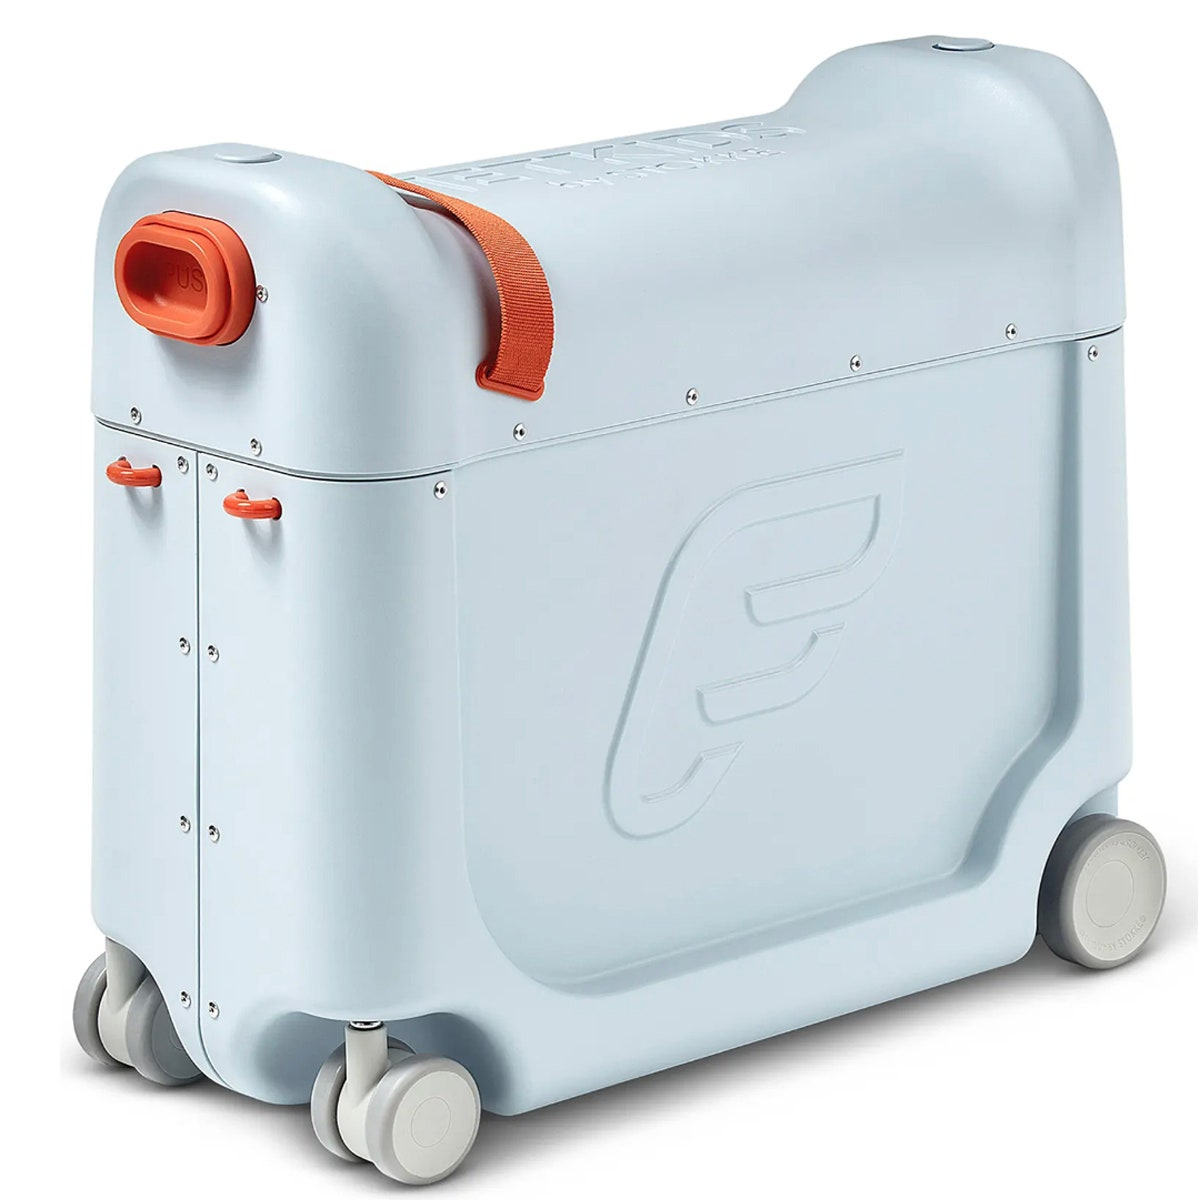 Jetkids by Stokke Bedbox 19-Inch Ride-On Carry-On Suitcase